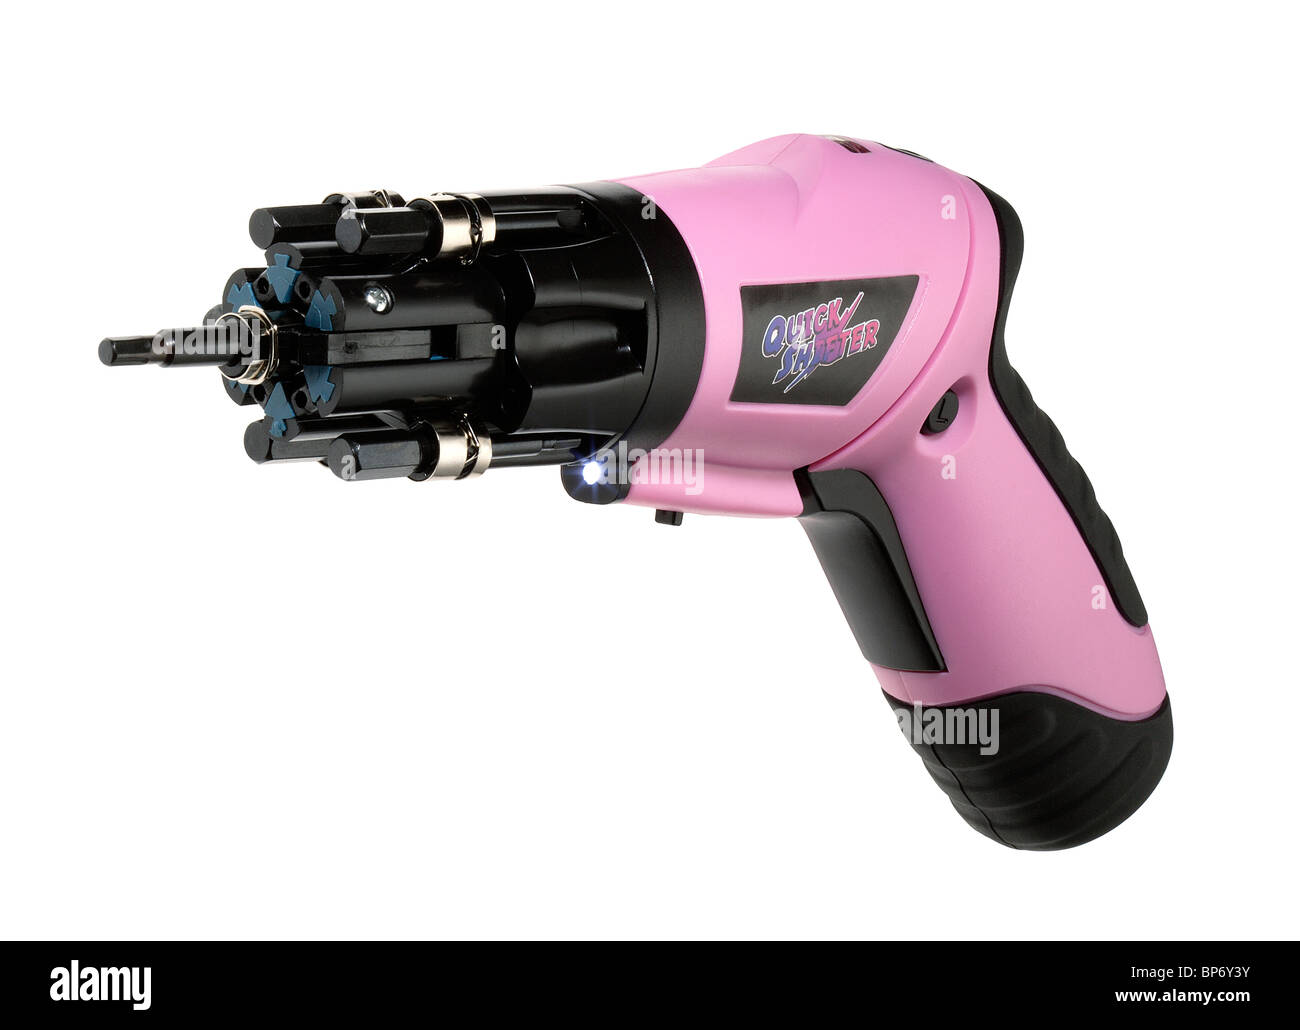 Pink electric powered rechargeable screwdriver - Stock Image